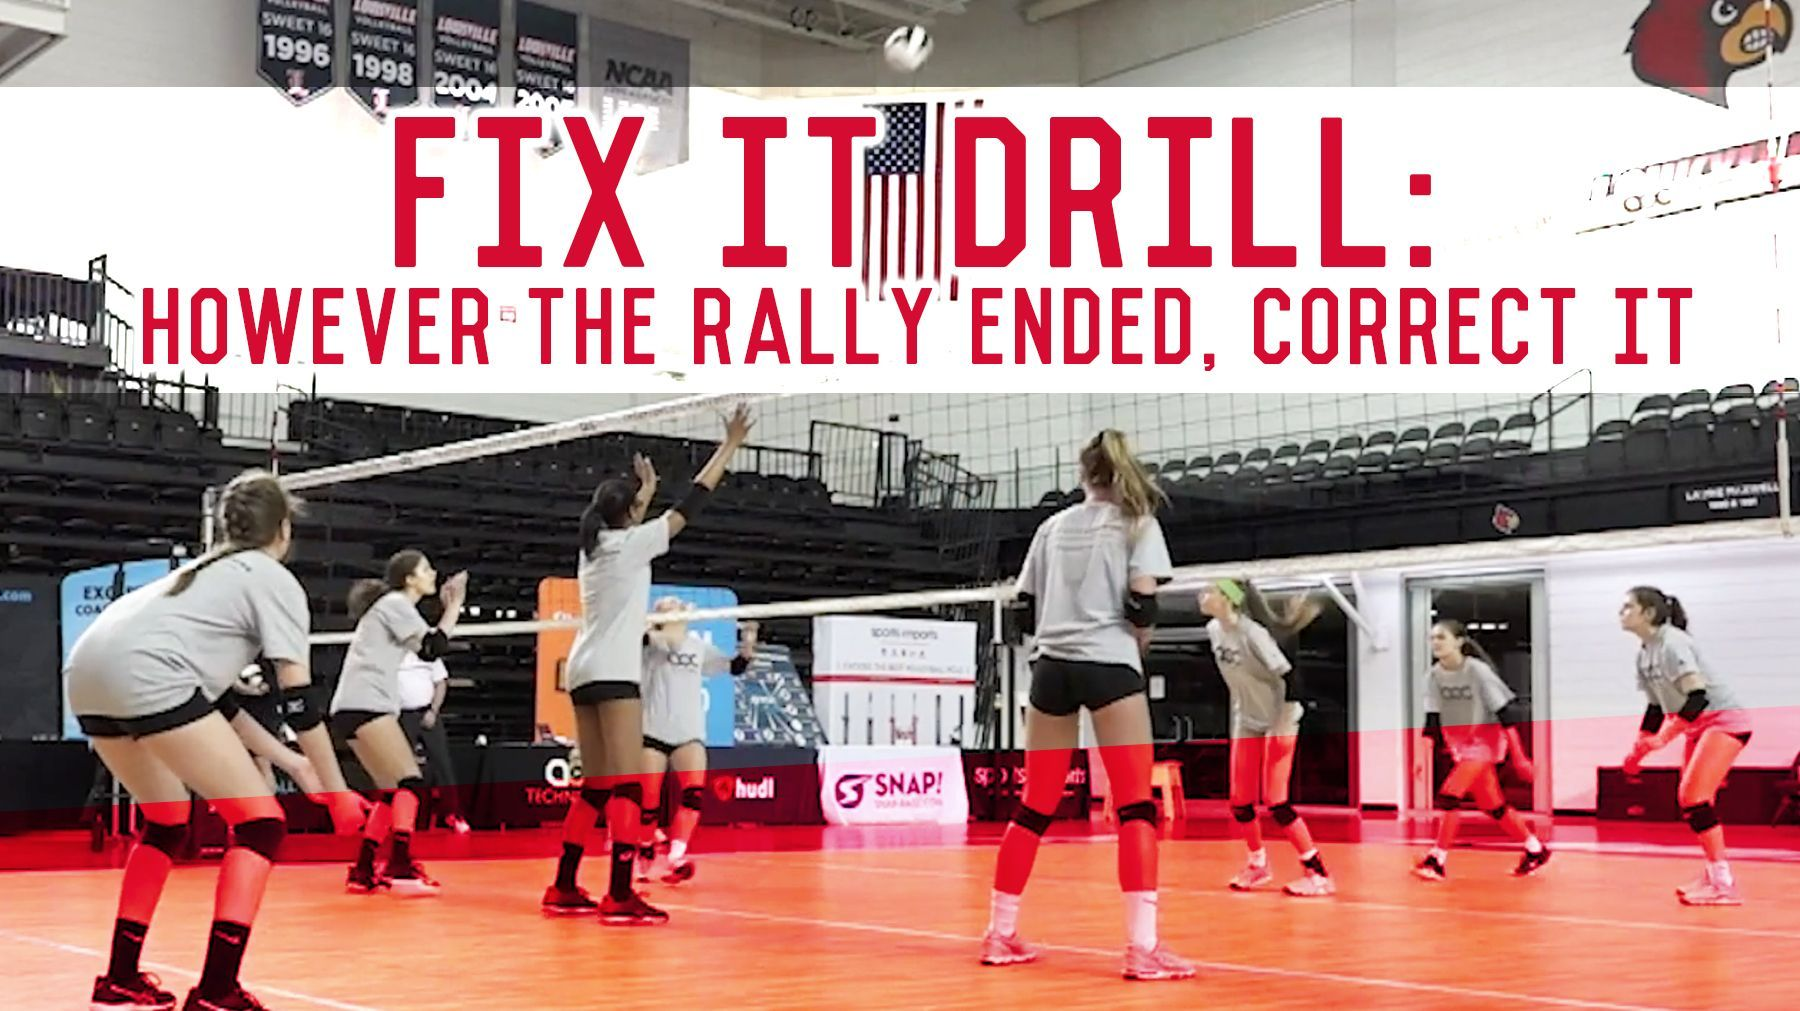 Fix It Drill However The Rally Ended Correct It Coaching Volleyball Volleyball Drills Volleyball Drills For Beginners